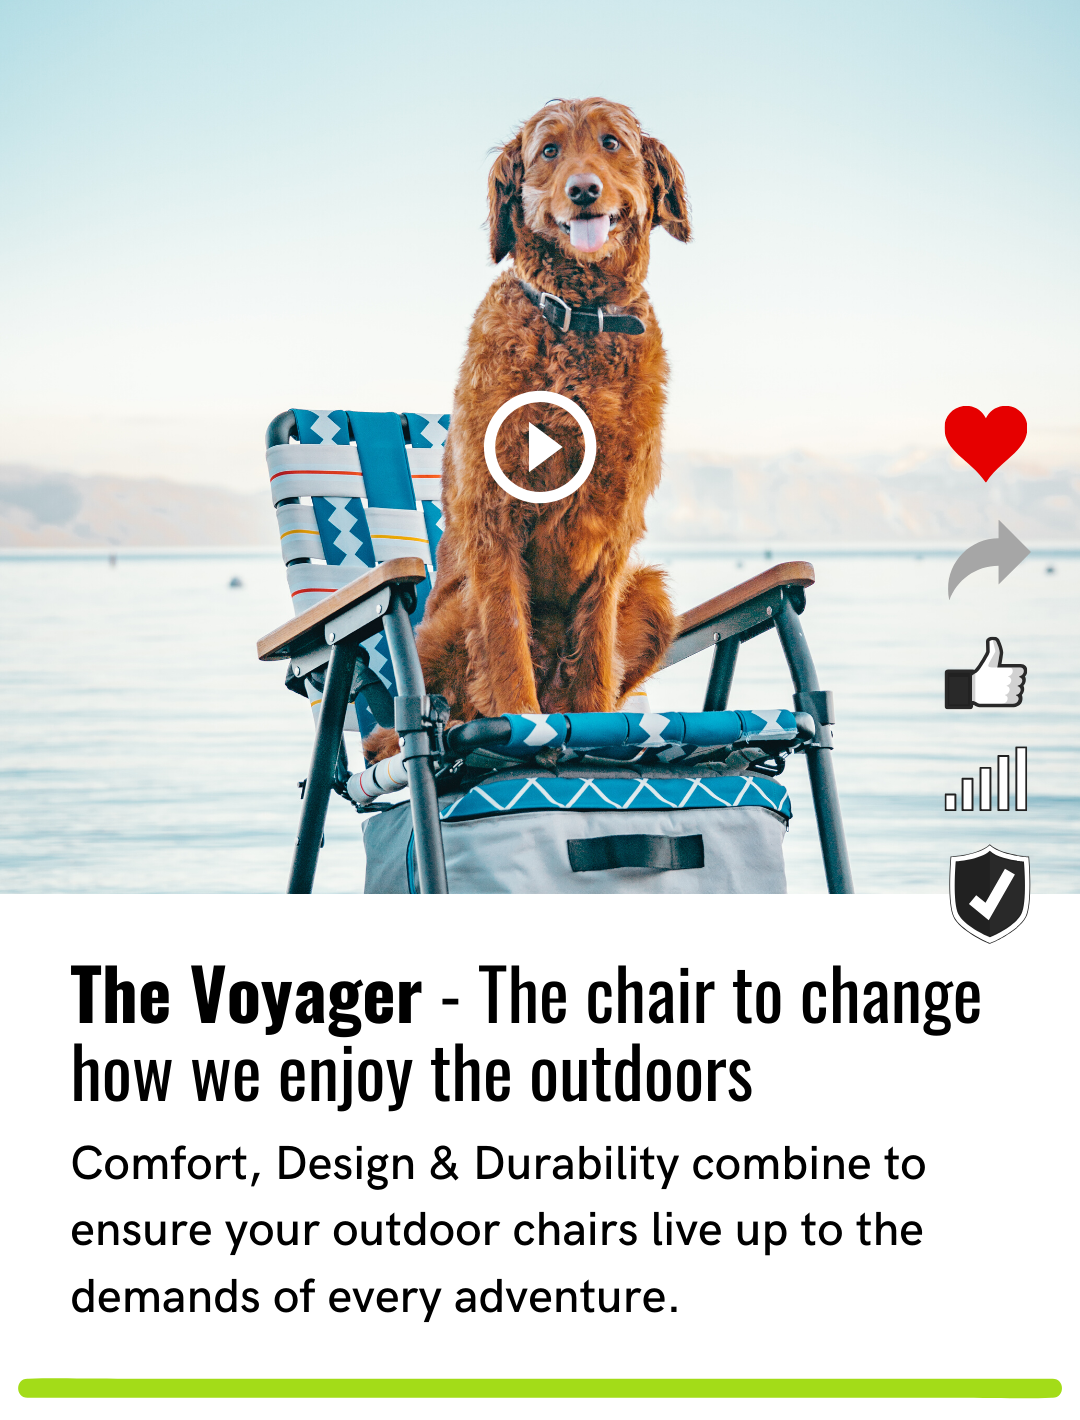 the voyager chair